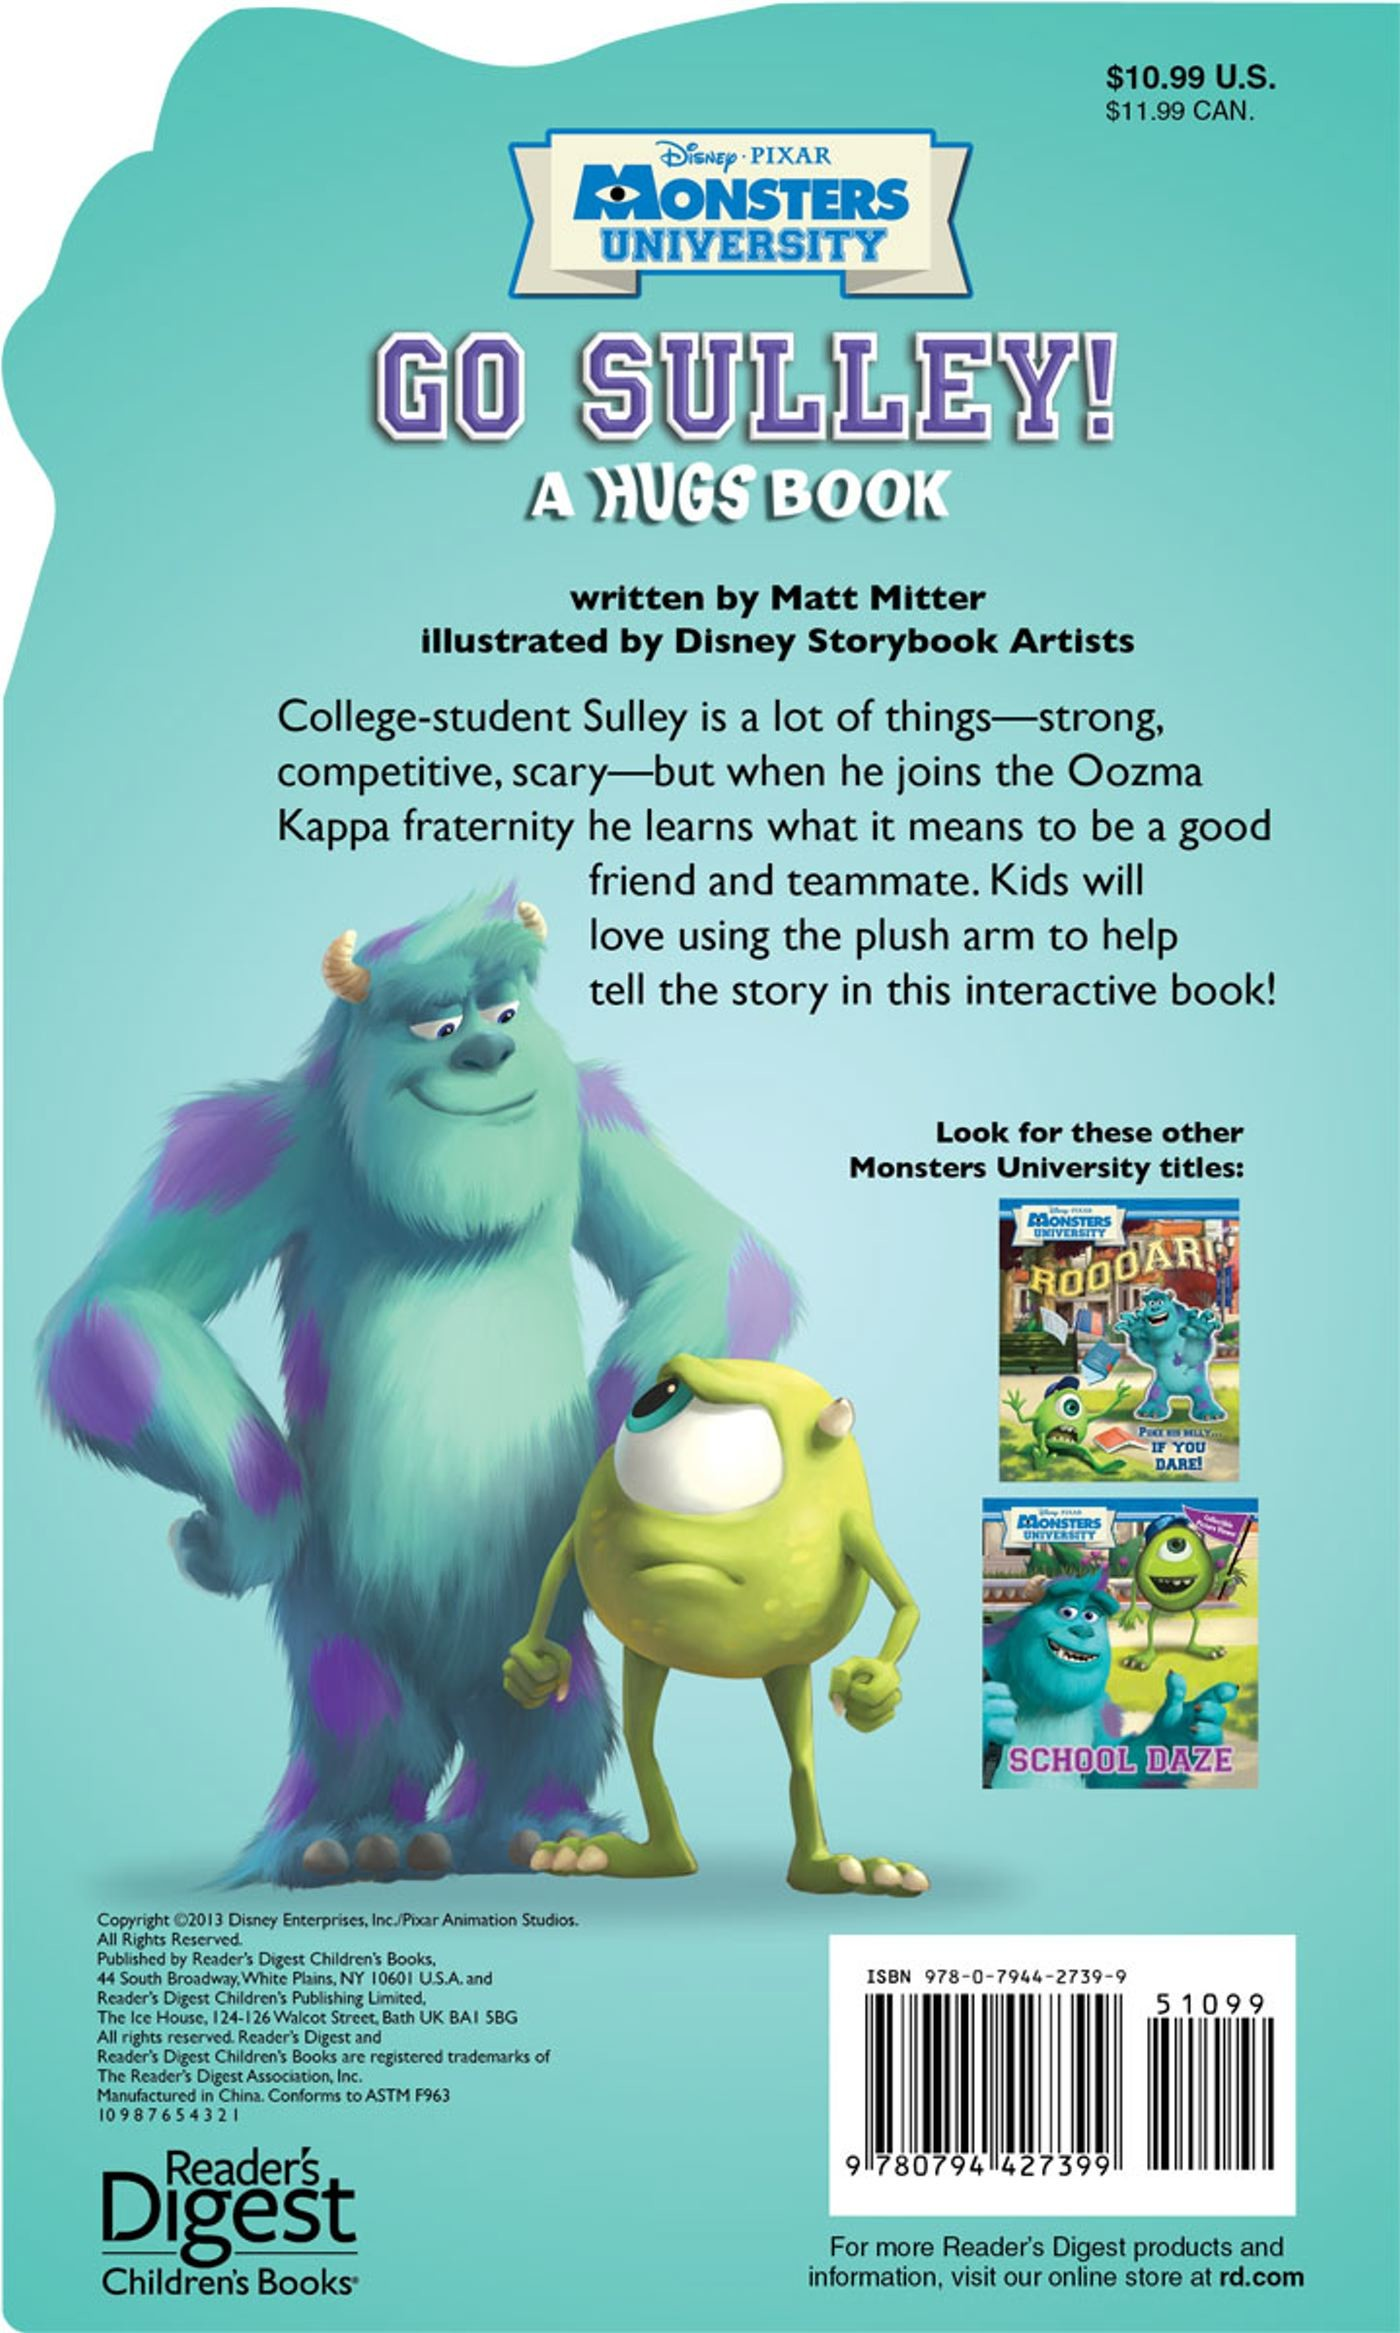 Disney-pixar-monsters-university-go-sulley!-9780794427399.in04